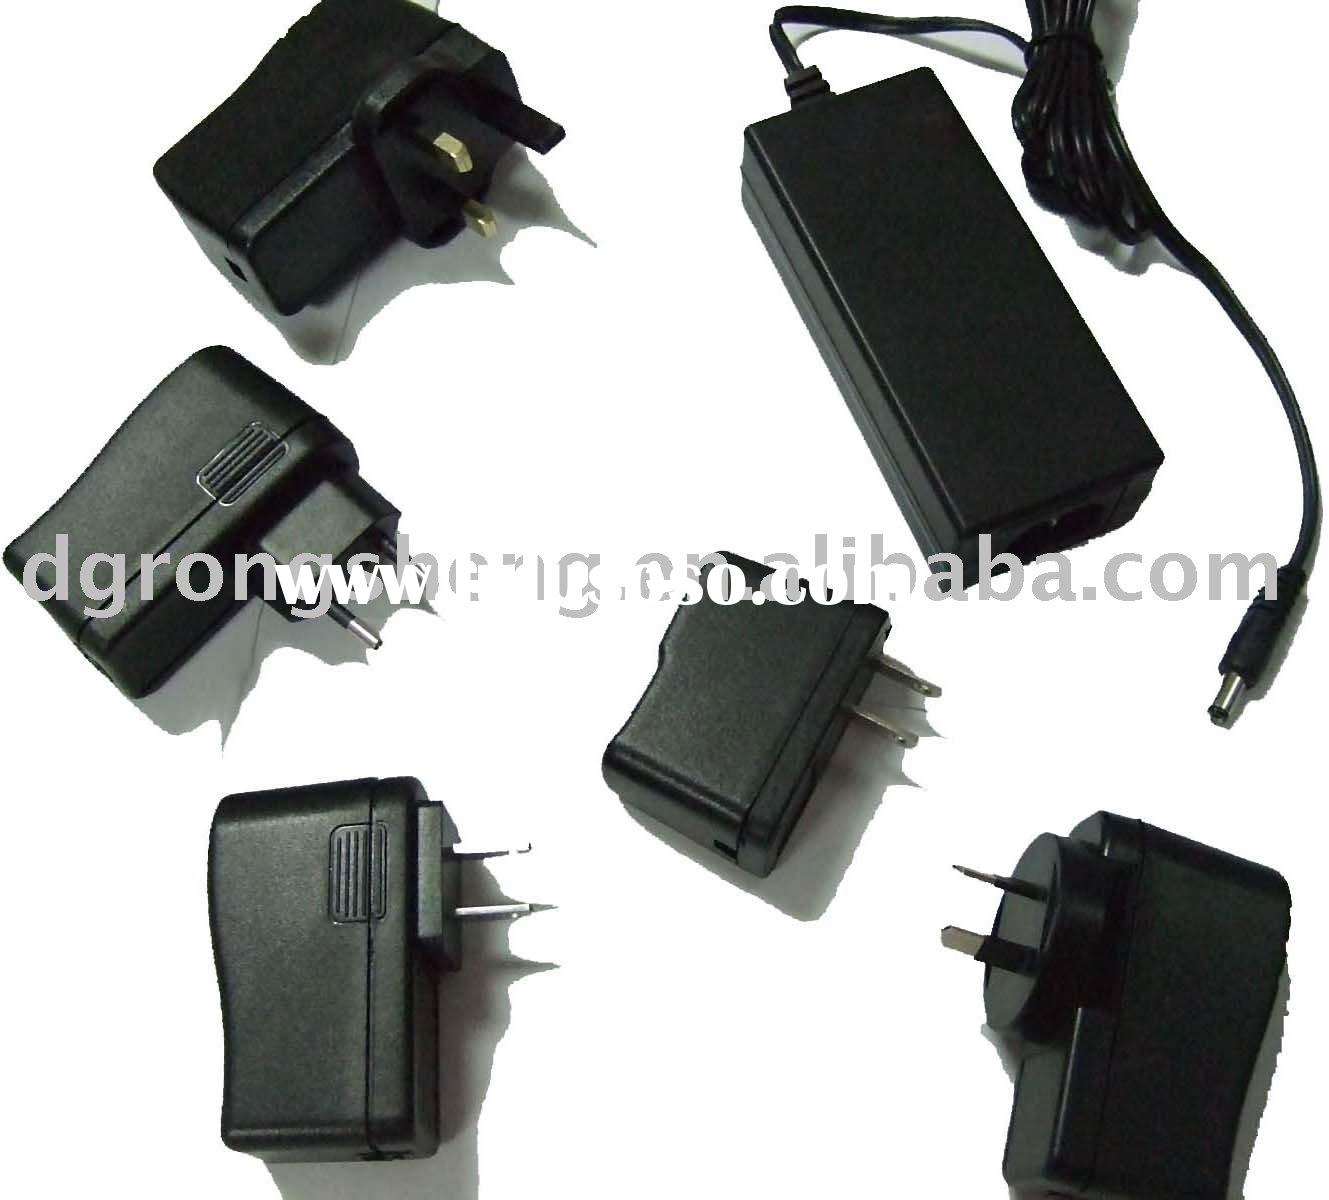 18W AC/DC Power Adapter, Low Power Consumption and Smart Appearance, Energy Efficiency 5 Switching P